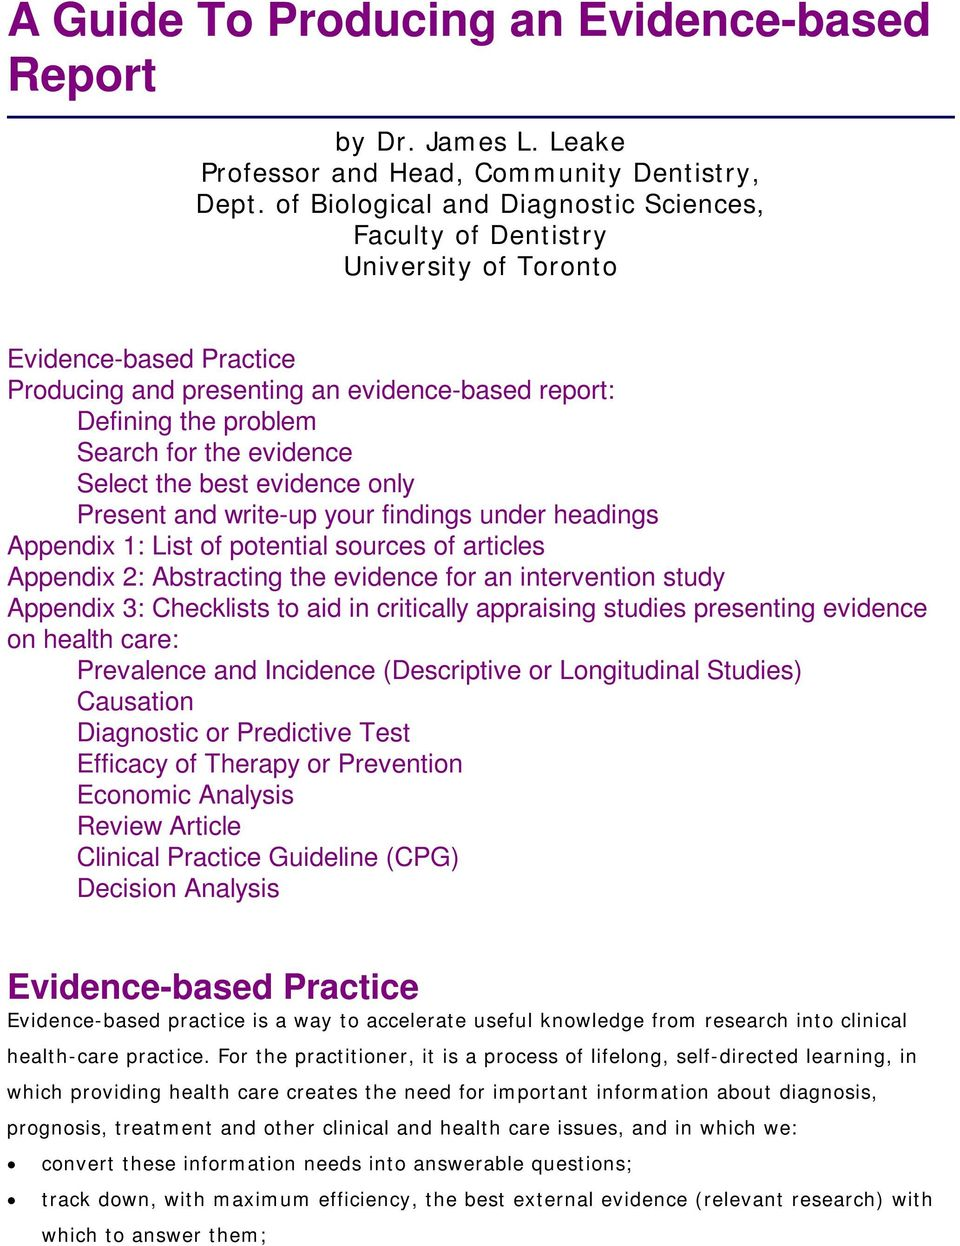 evidence Select the best evidence only Present and write-up your findings under headings Appendix 1: List of potential sources of articles Appendix 2: Abstracting the evidence for an intervention